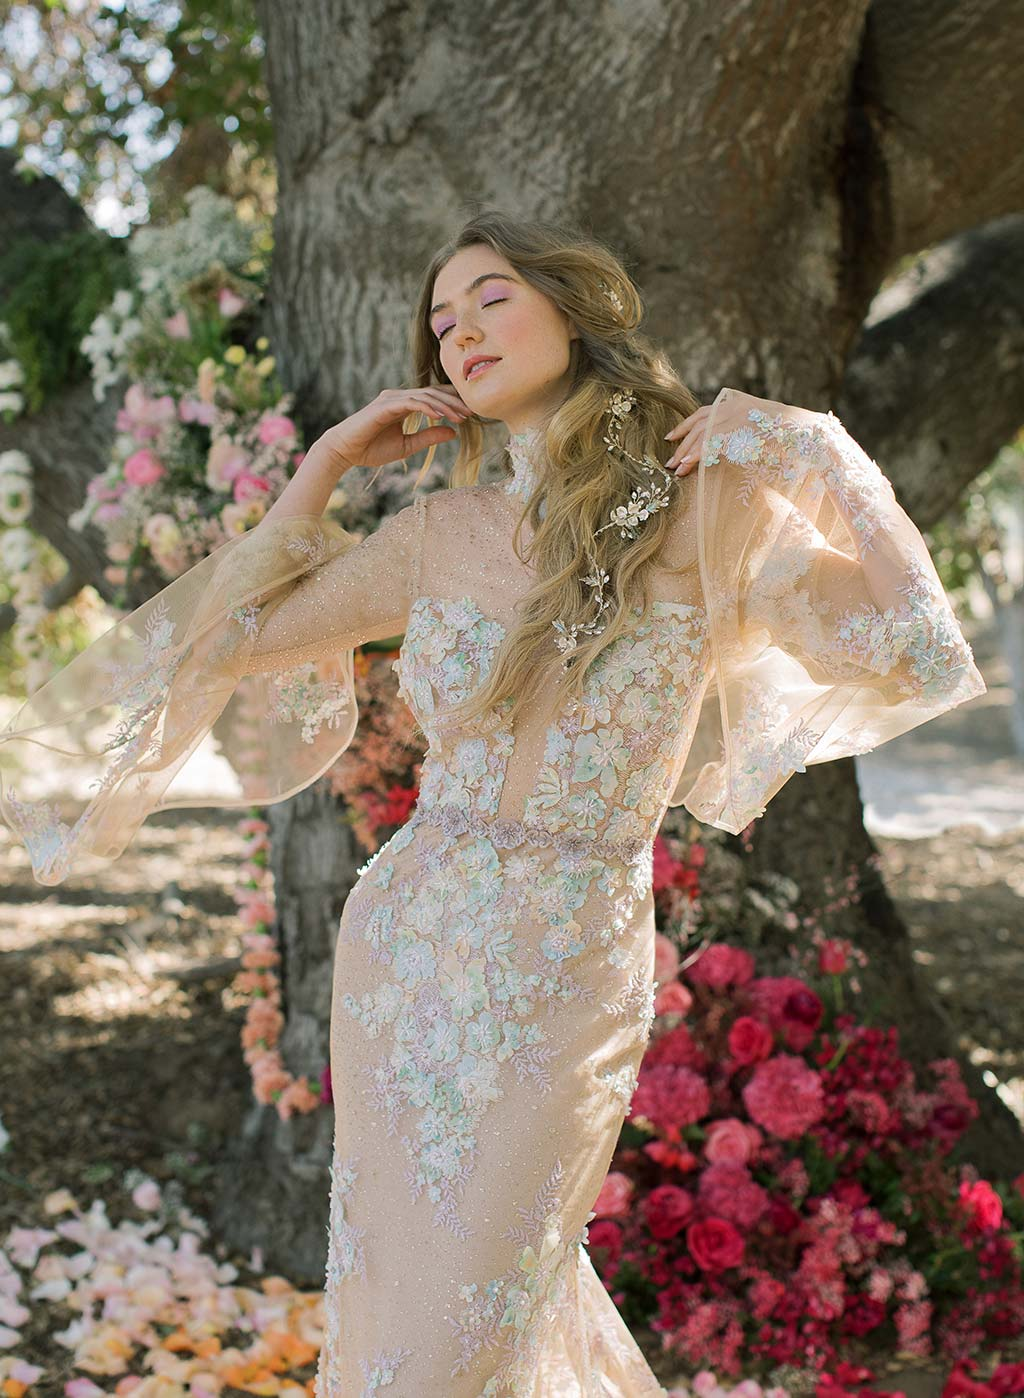 Venus Embroidered Wedding Dress  by Claire Pettibone